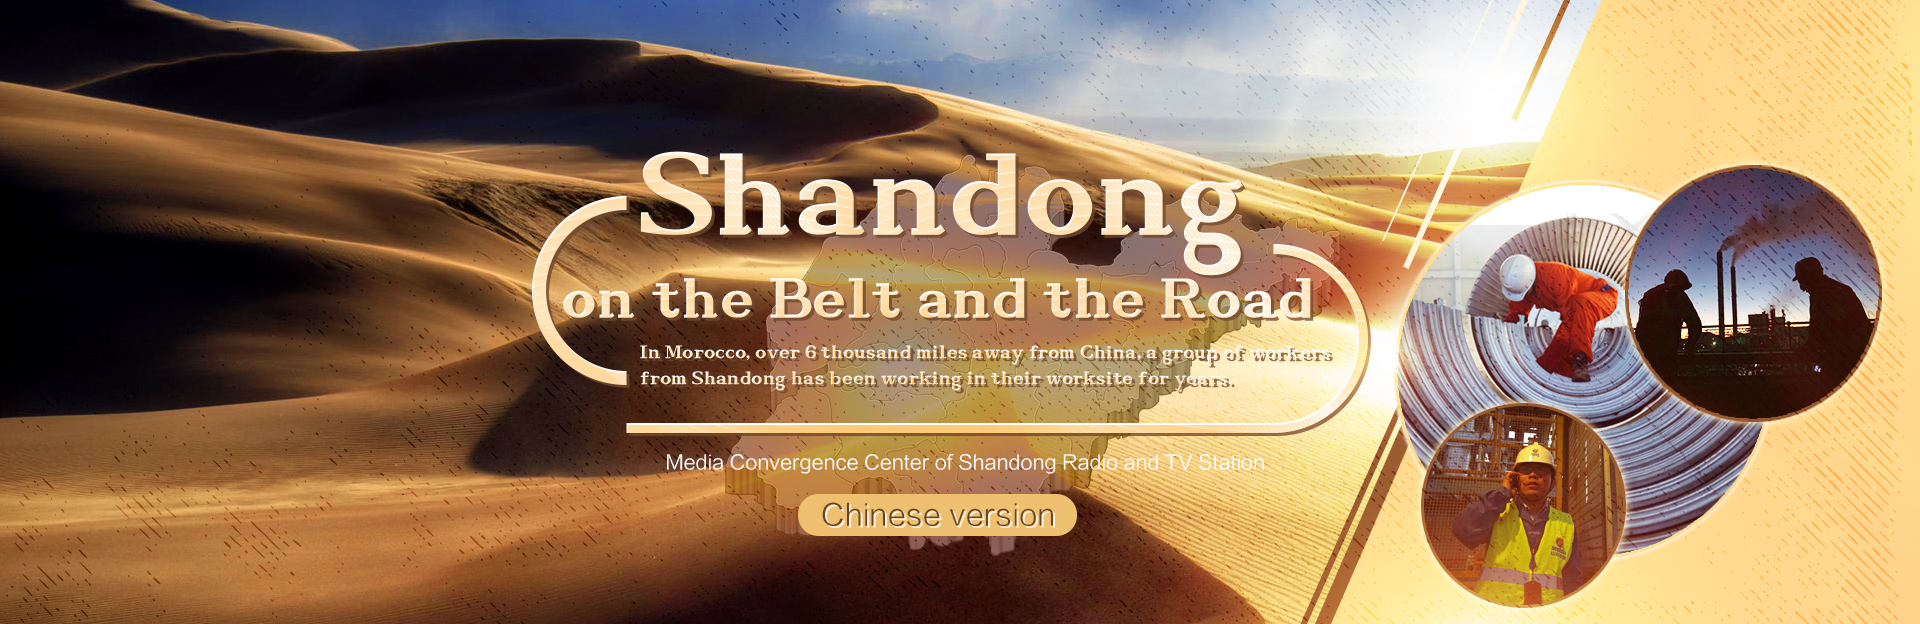 Shandong on the Belt and the Road_topics